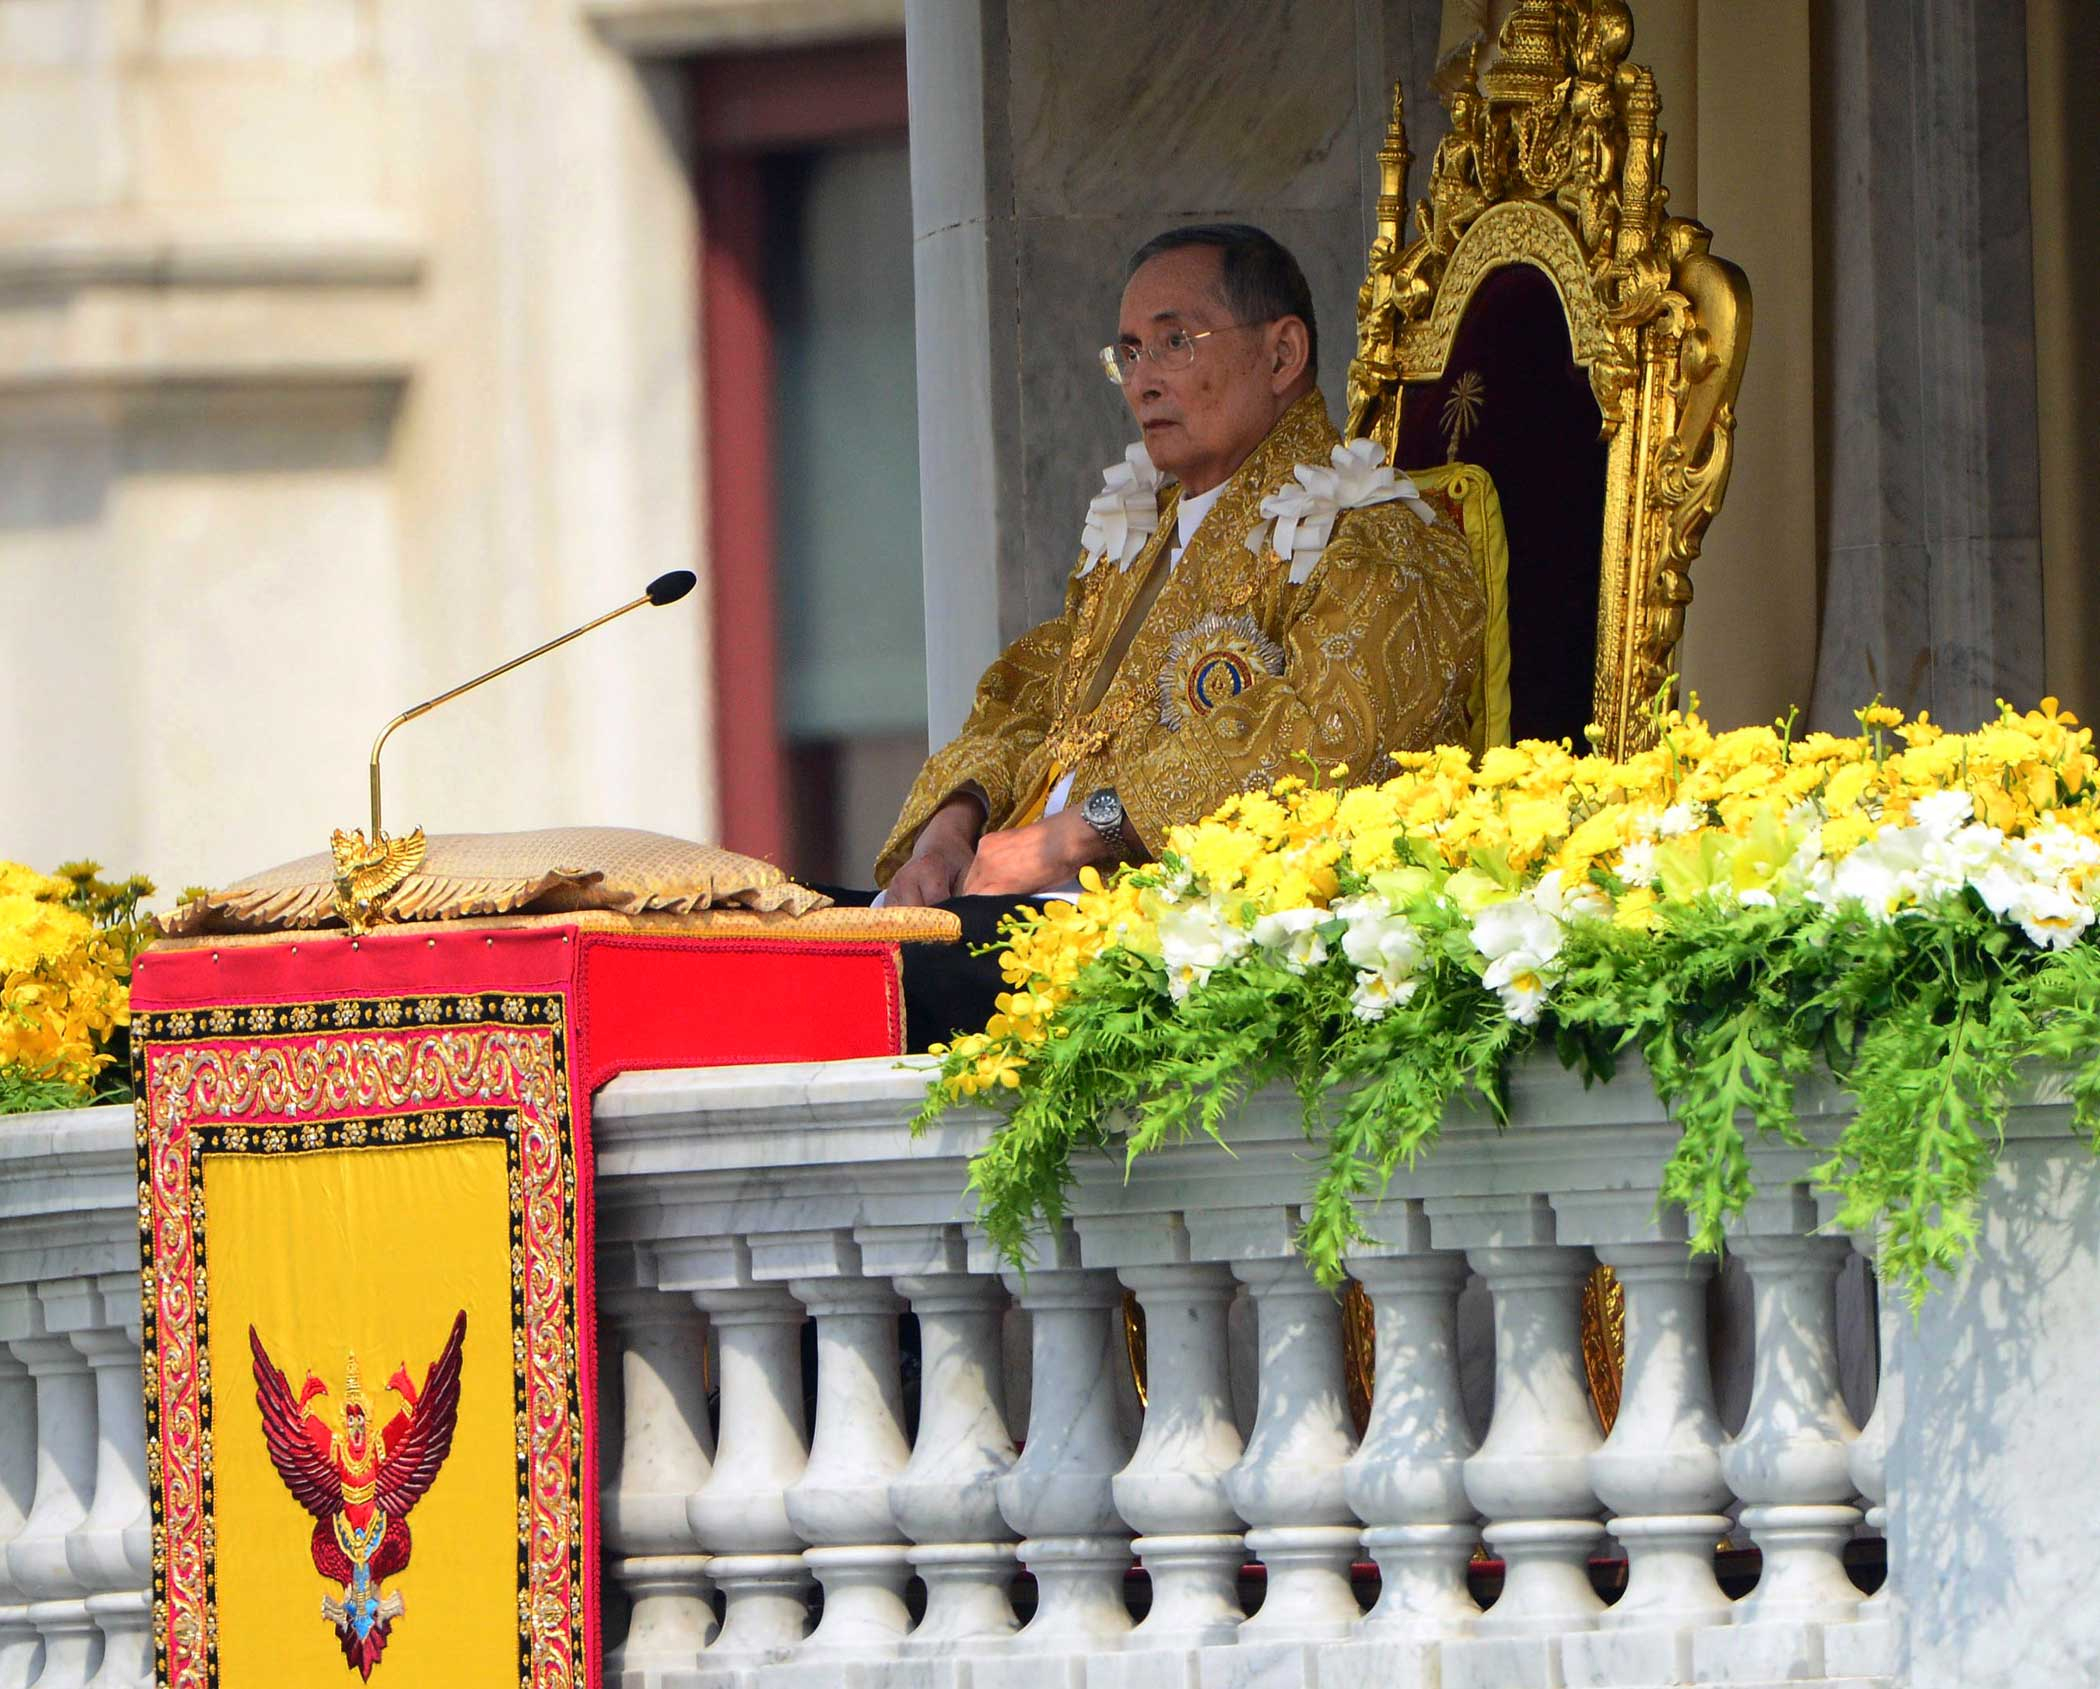 Thai King Bhumibol Adulyadej appears to address a crowd from the balcony at the Anantha Samakhom Throne Hall in Bangkok, Thailand, during his 85th birthday celebration on Dec. 5, 2012.